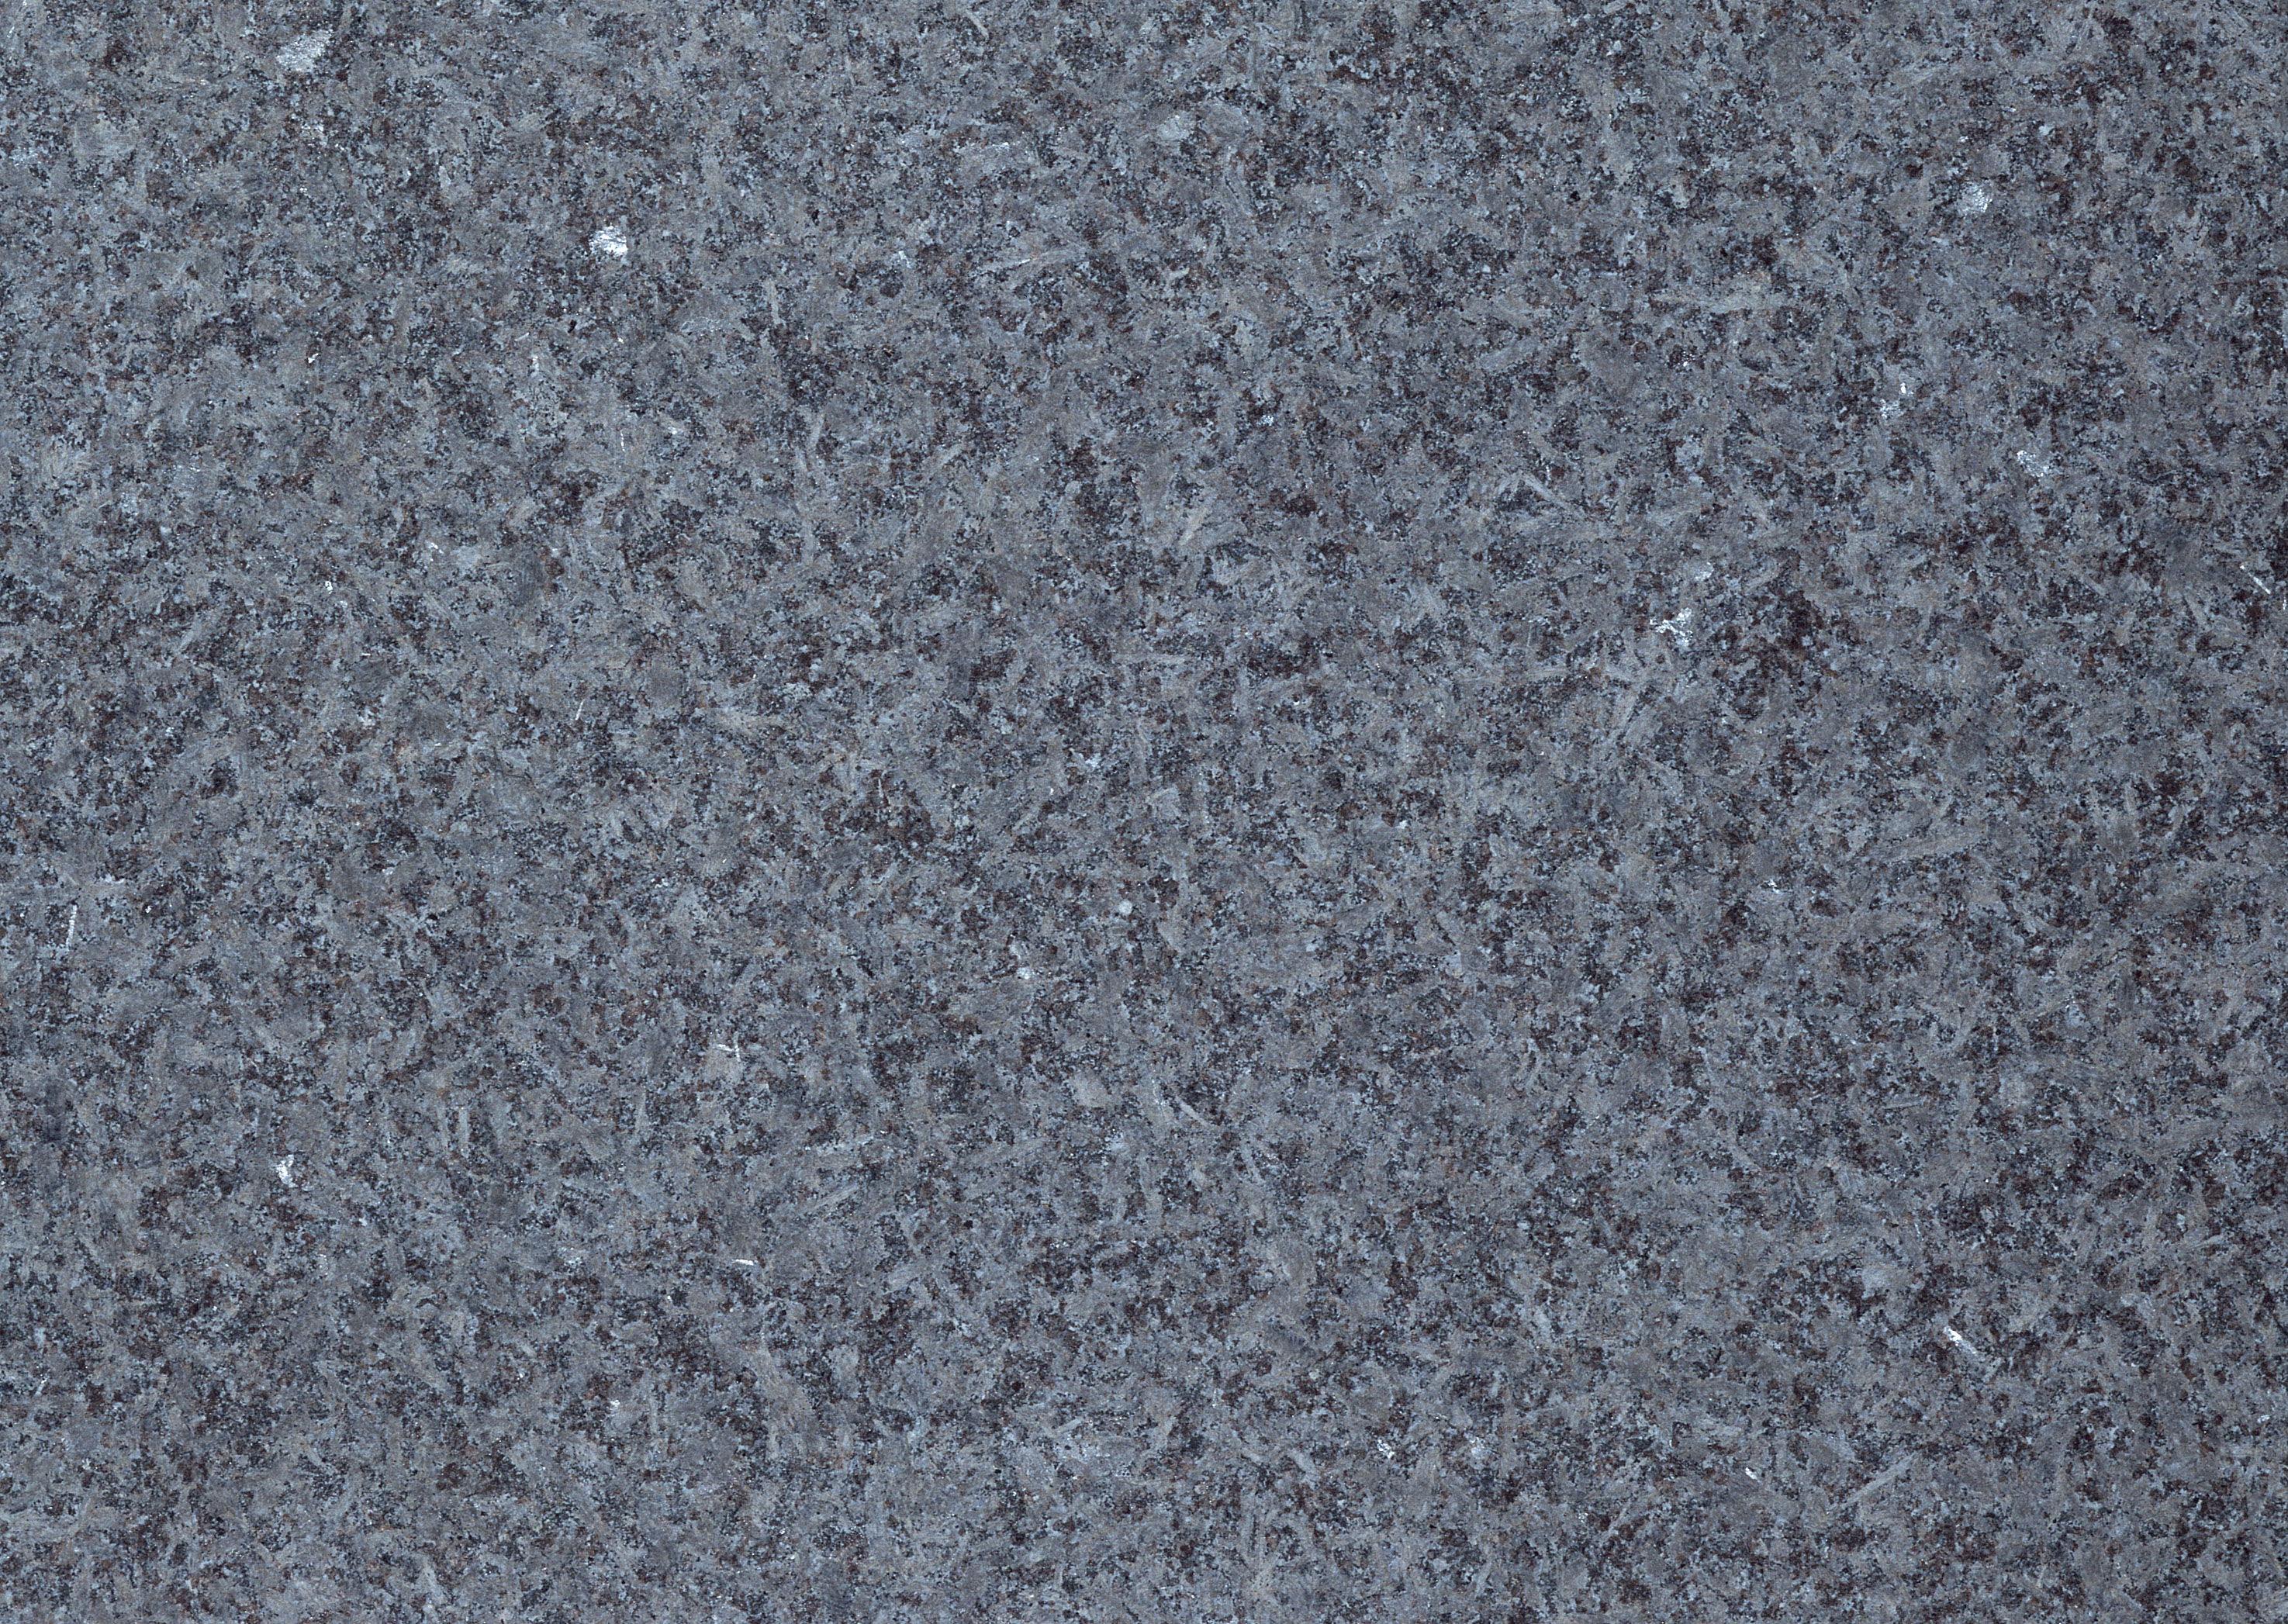 Granite stone texture background image